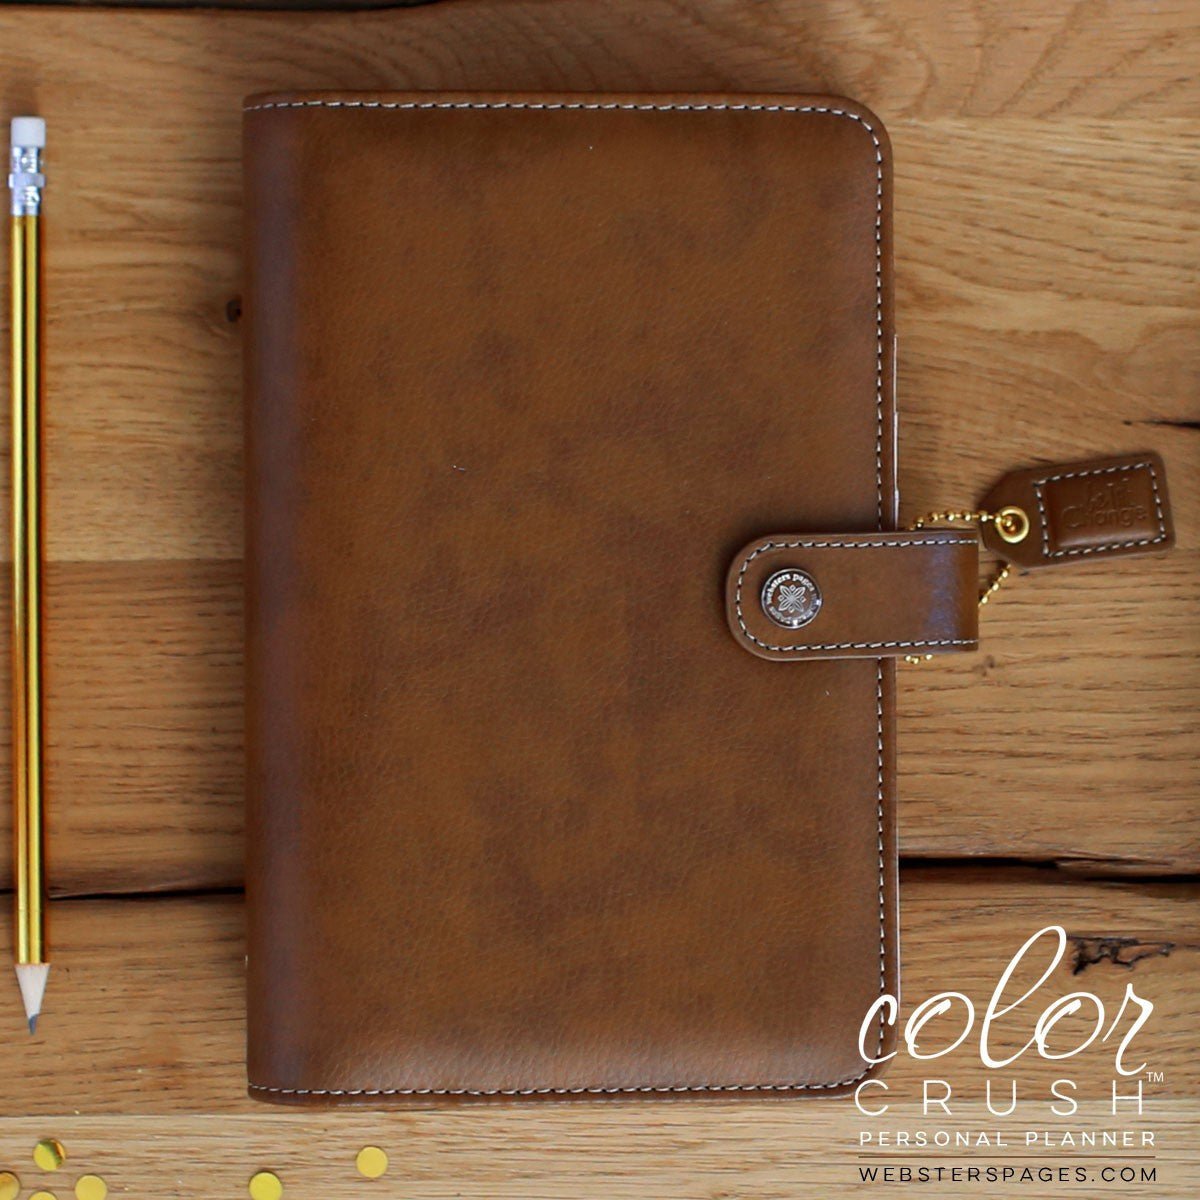 Webster's Pages Personal Planner in Walnut - Unicorn Planner